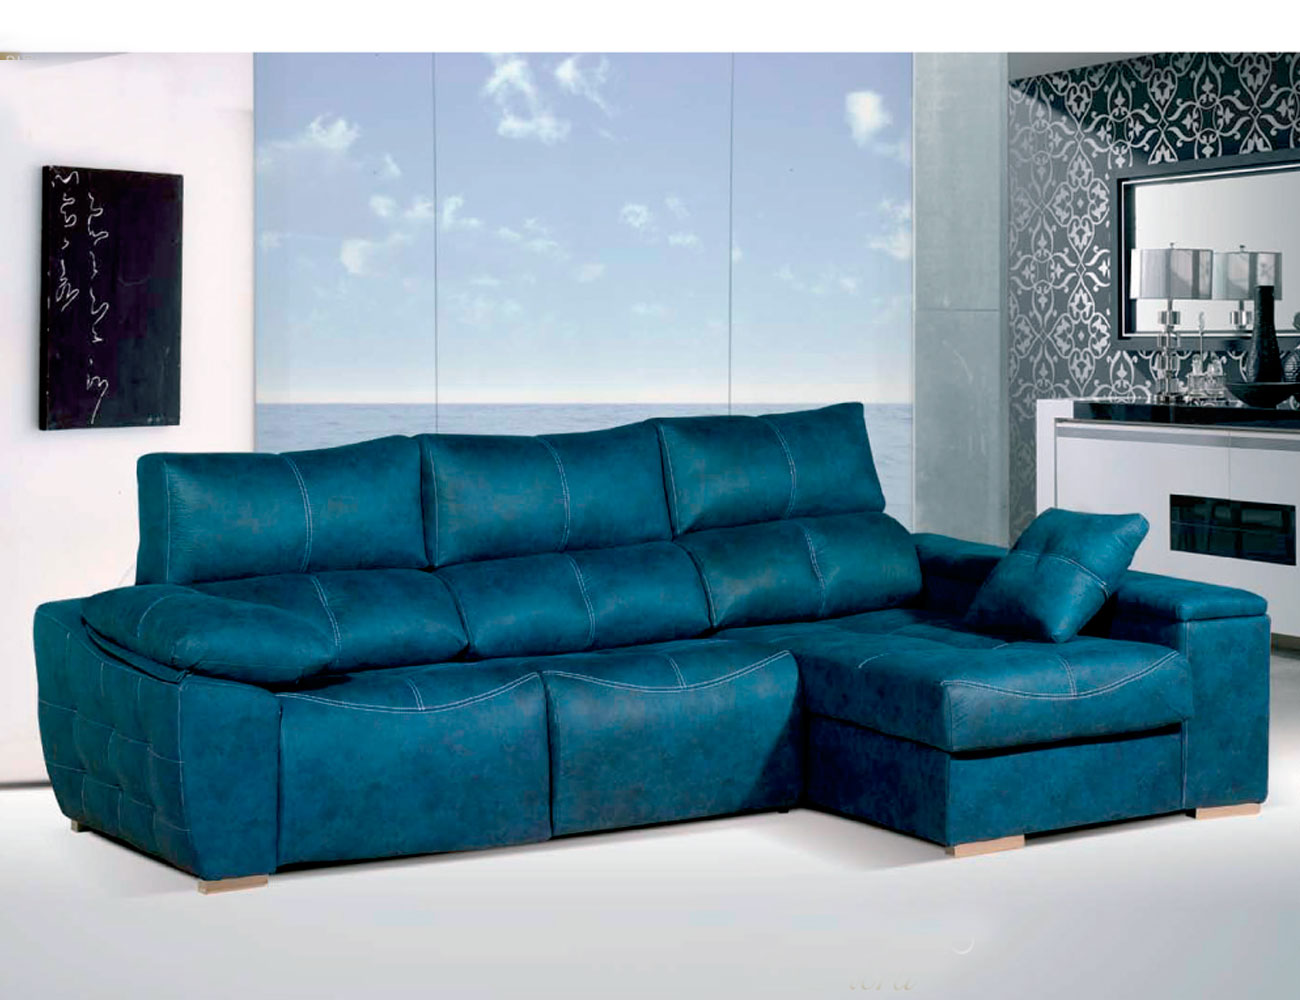 Sofa chaiselongue relax 2 motores anti manchas turquesa